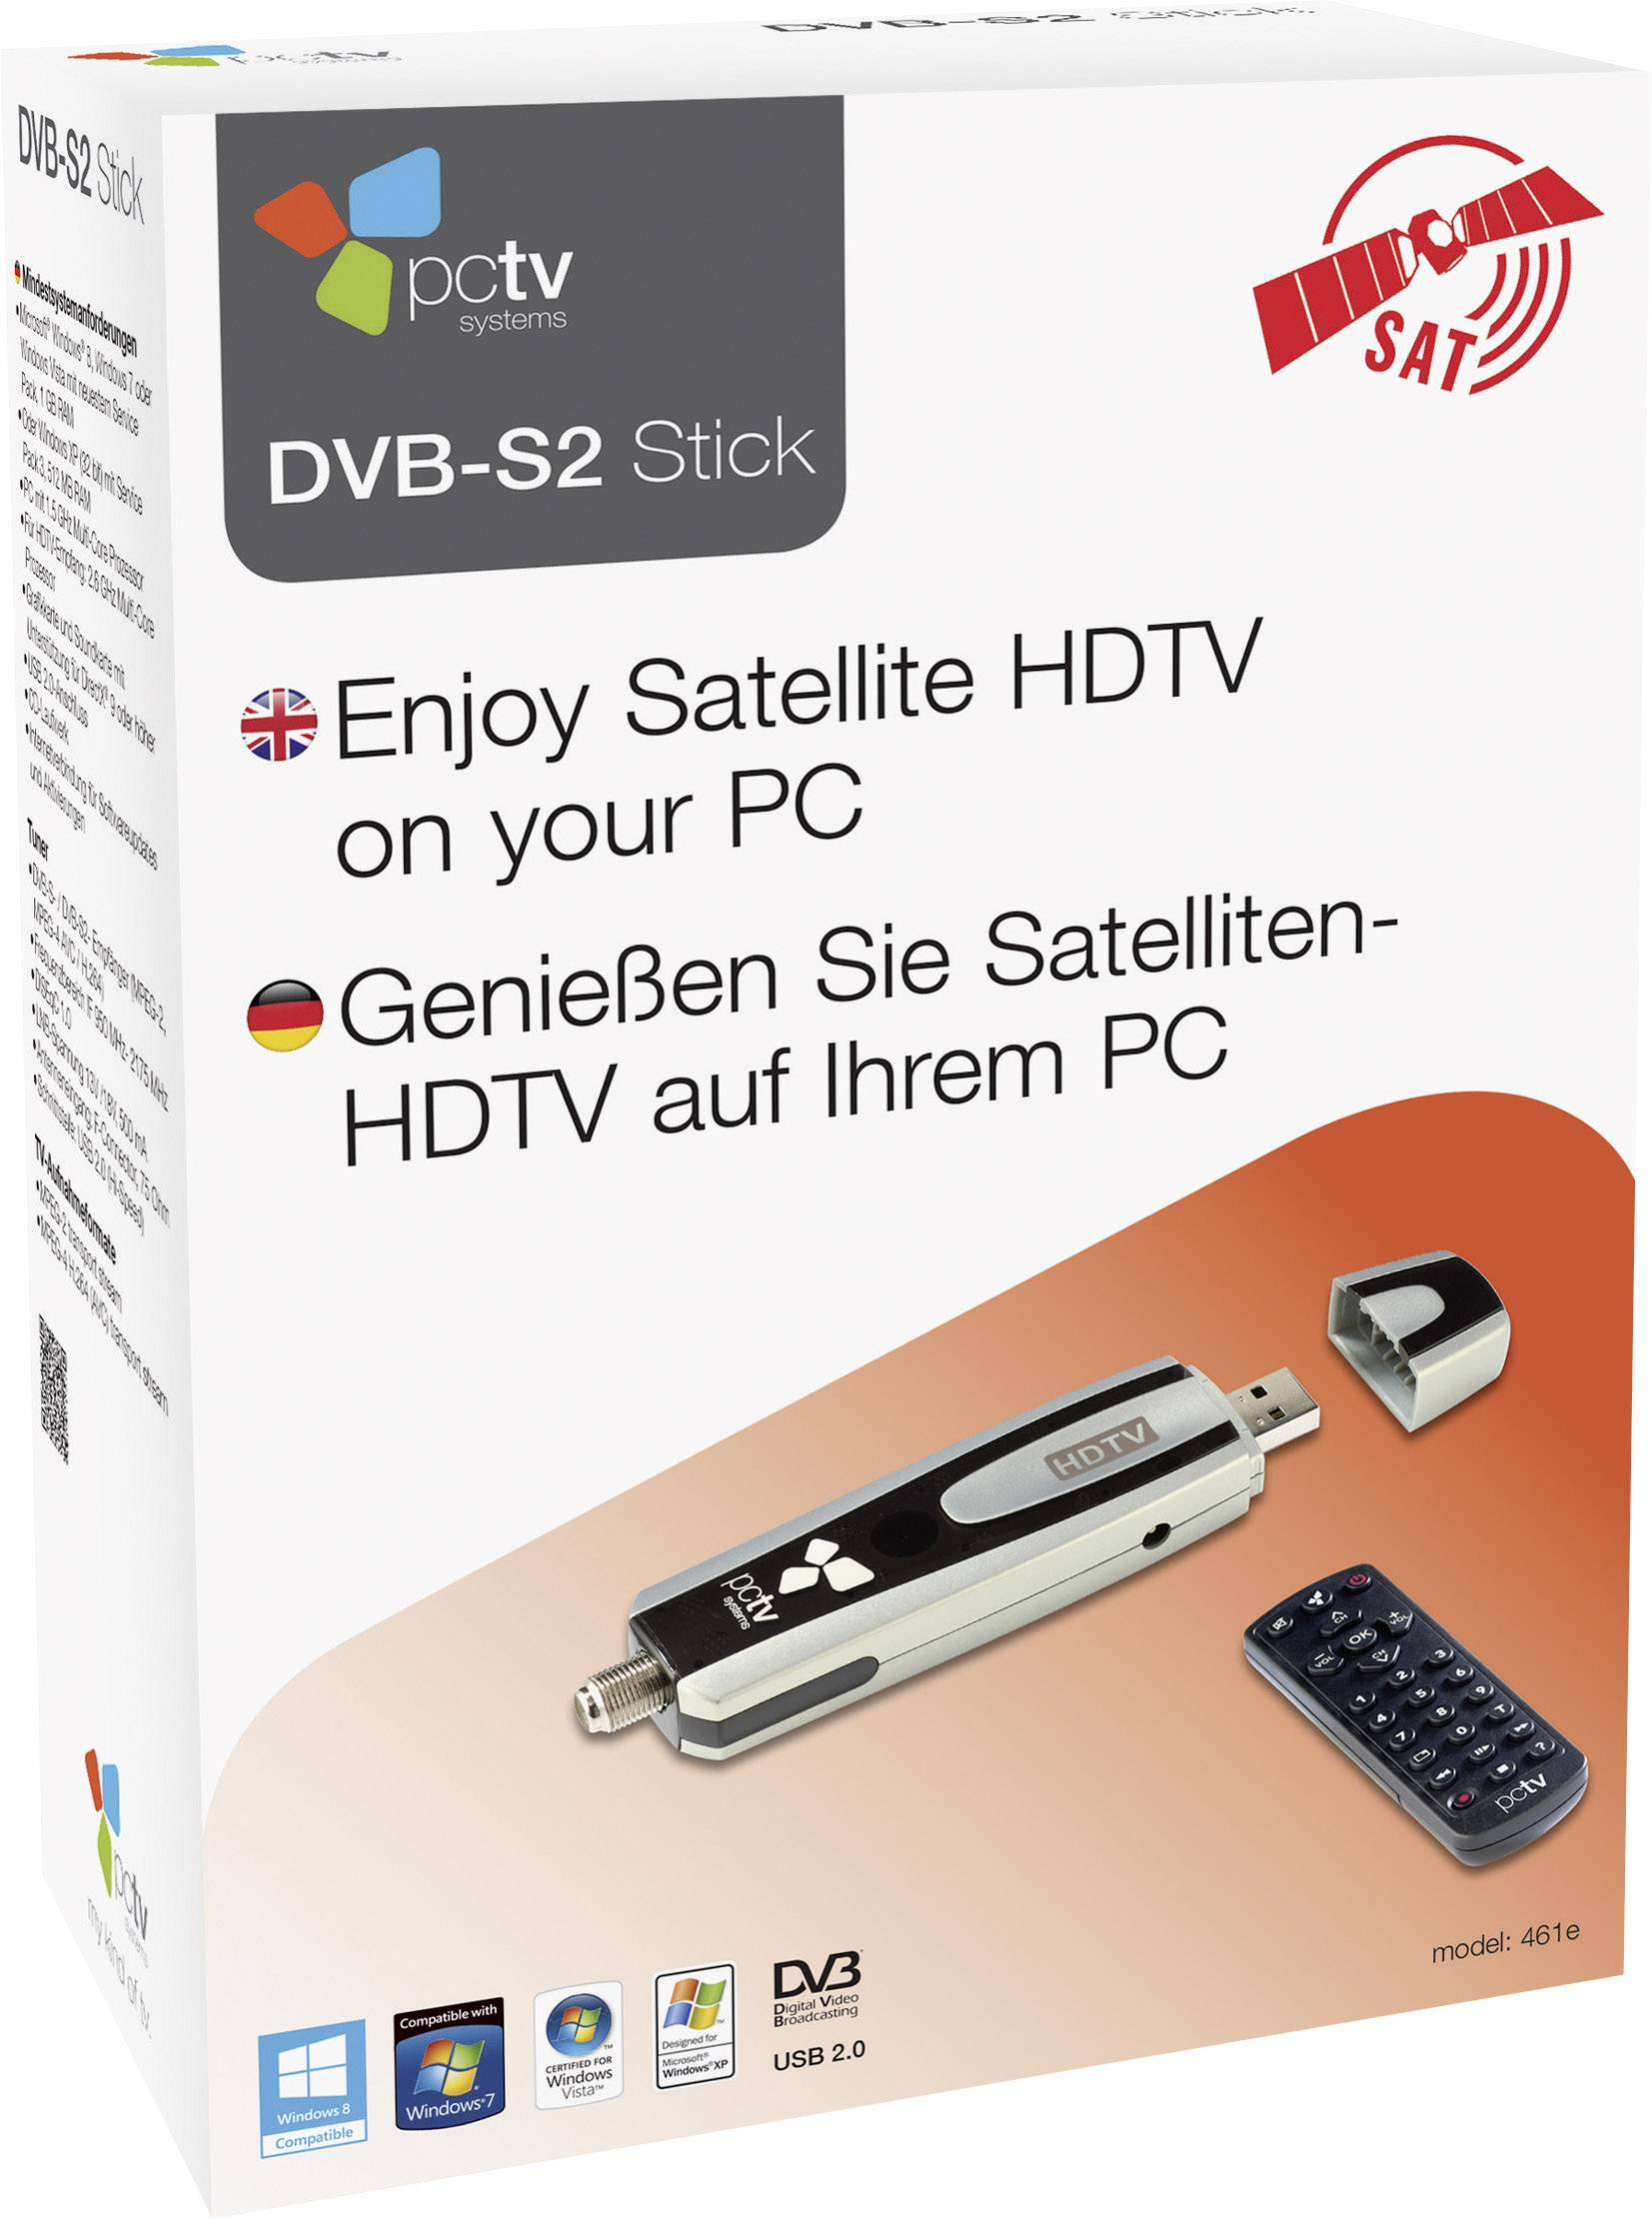 Download Driver: PCTV Systems 300i TV Tuner